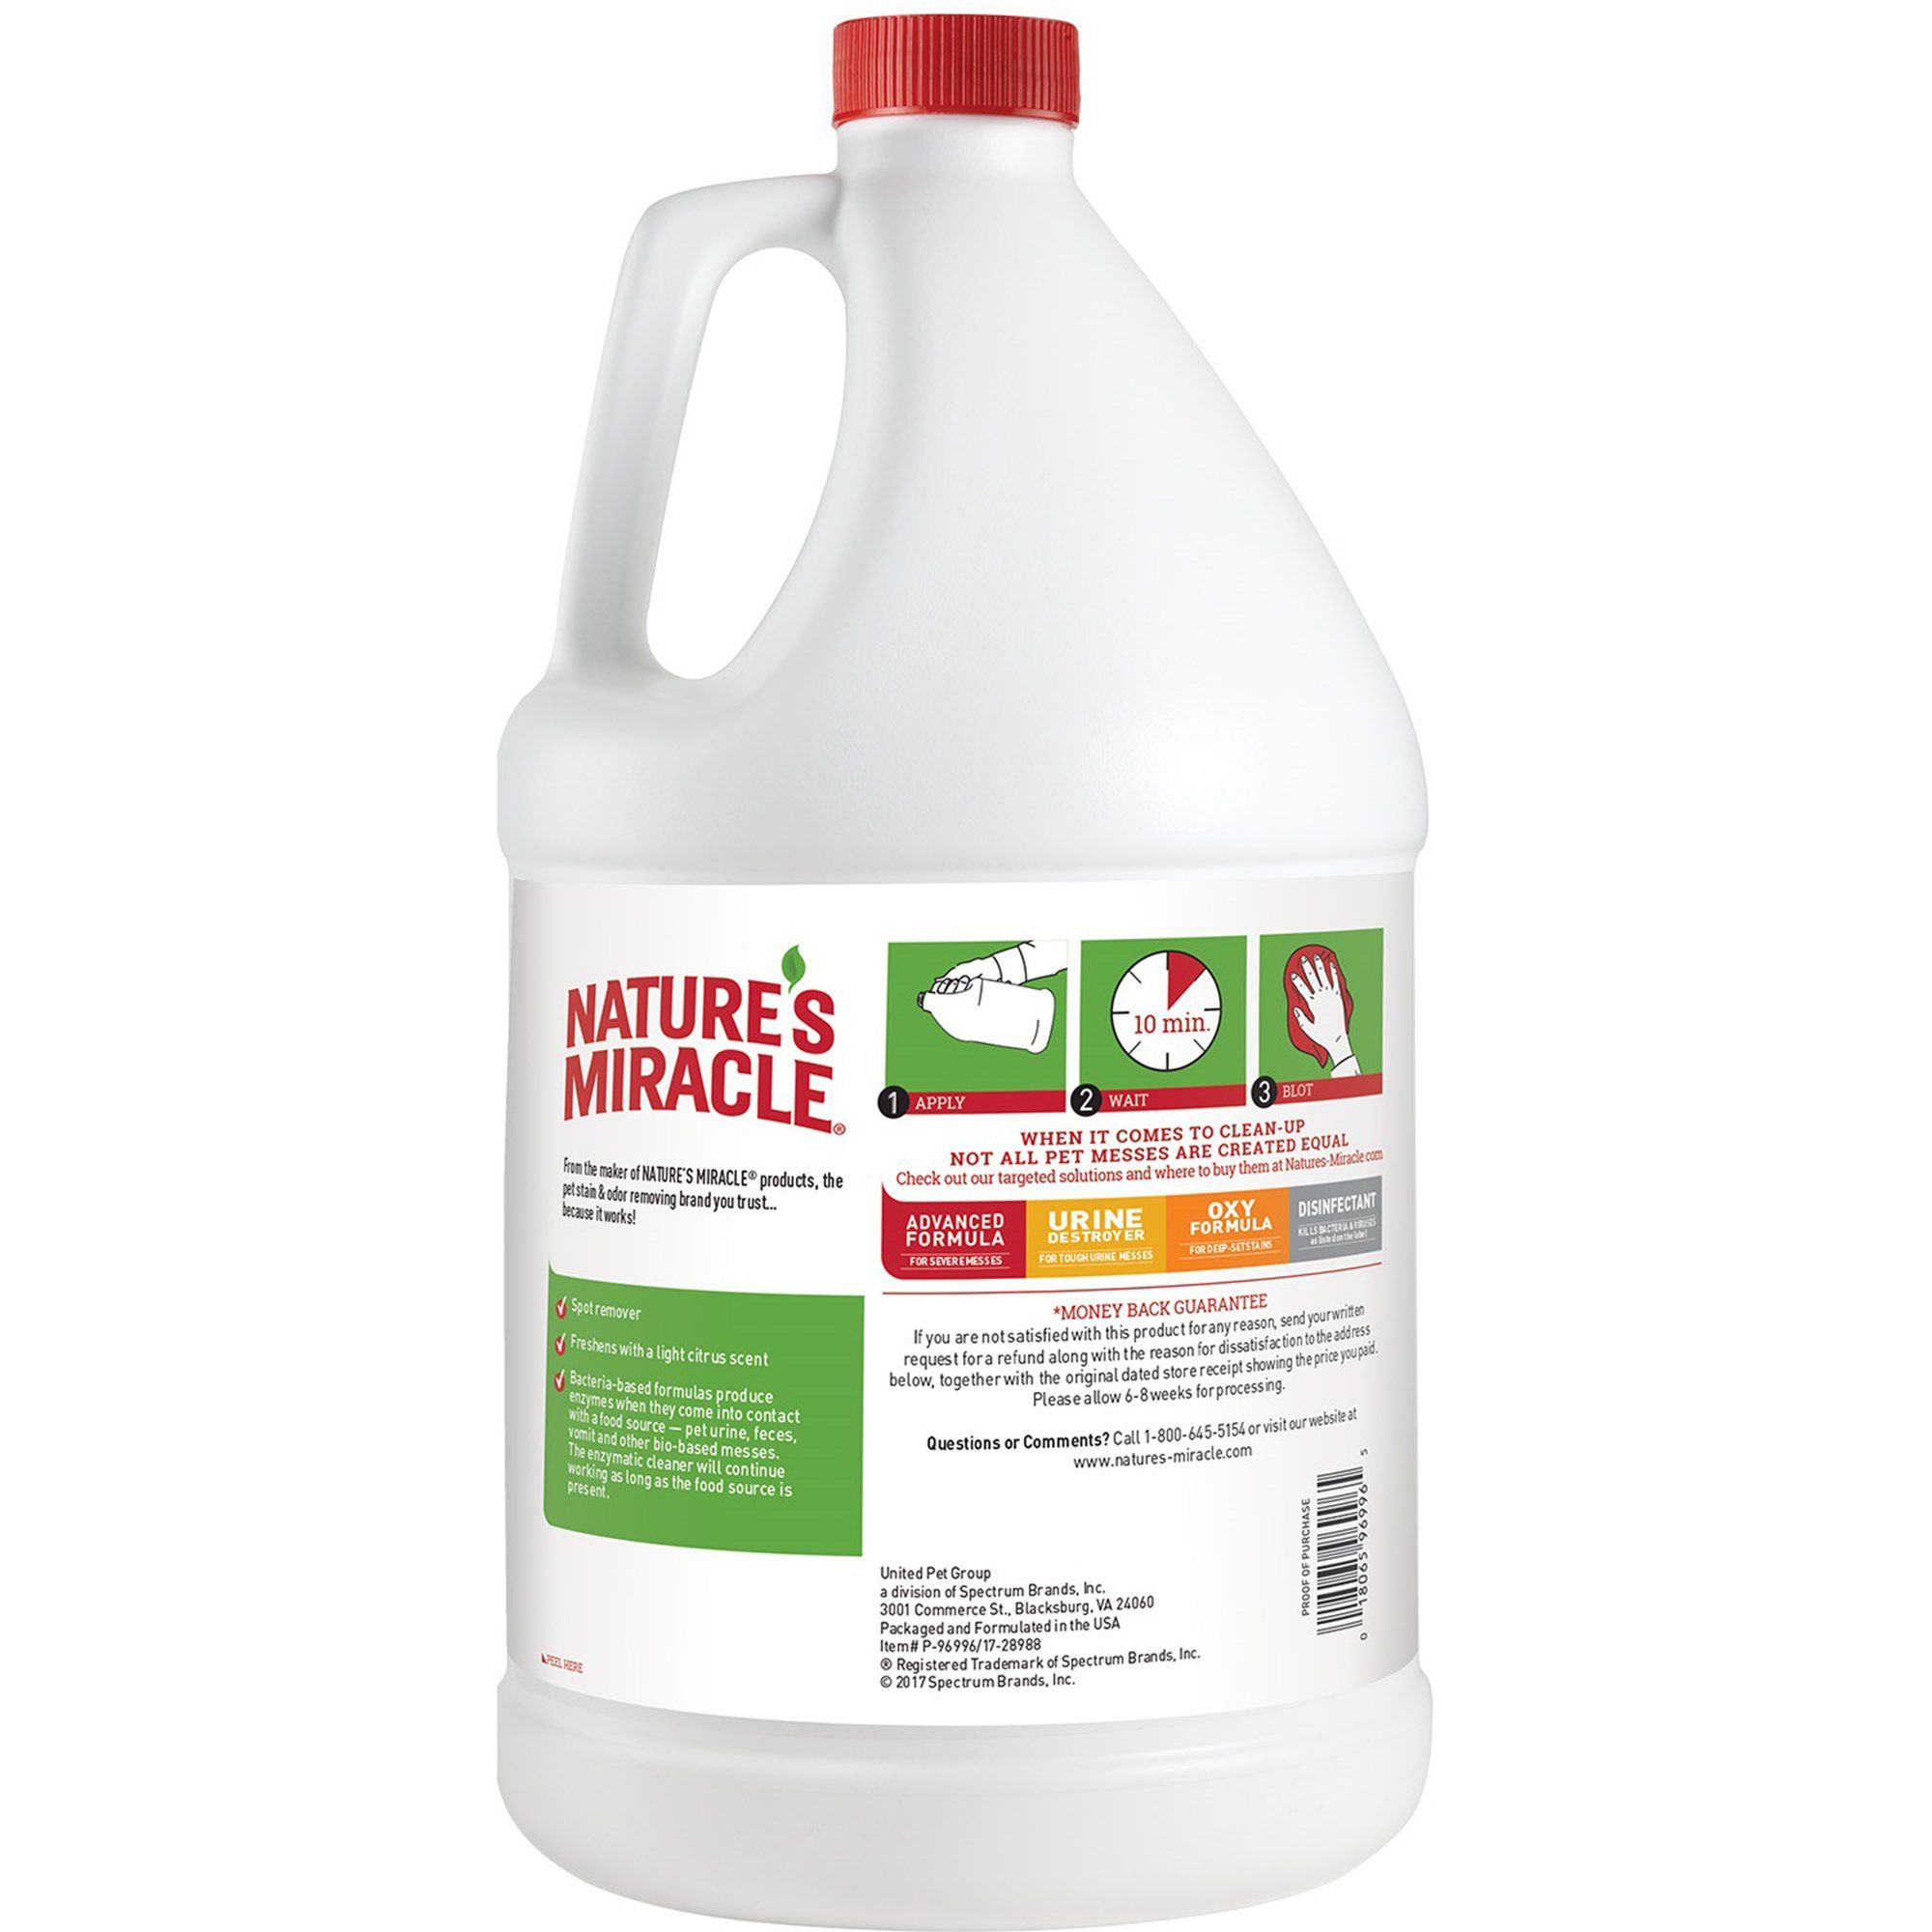 Nature's Miracle New Formula Just for Cats Stain & Odor